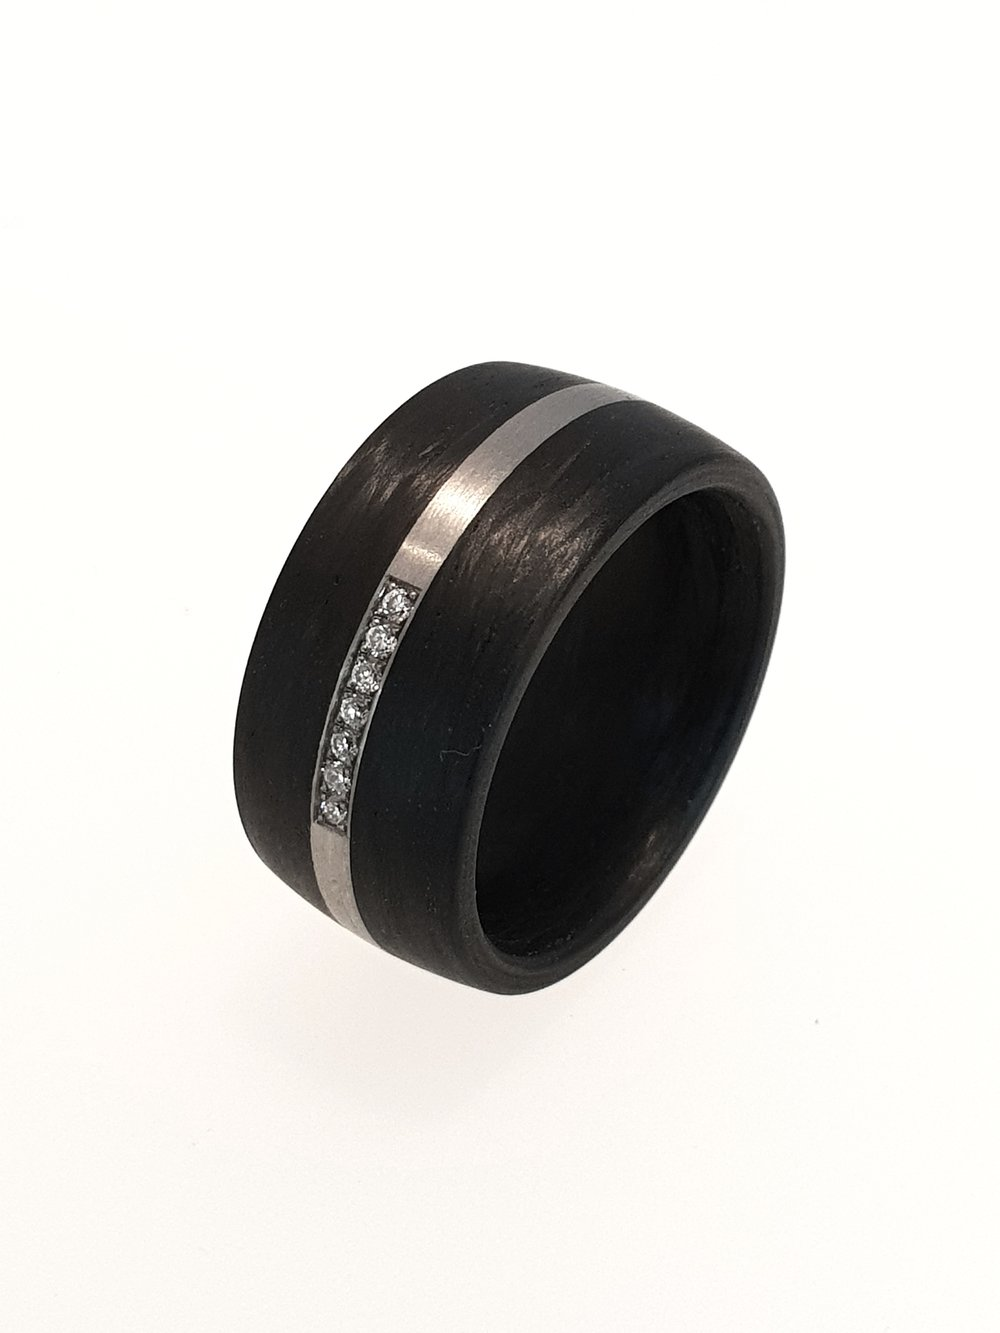 Carbon Fibre Ring with .05ct Diamonds, 10mm    Titan Factory (Model: 59316/003/005/N55)   Current Stock Size: M 1/2  Stock Code: E9806  £360